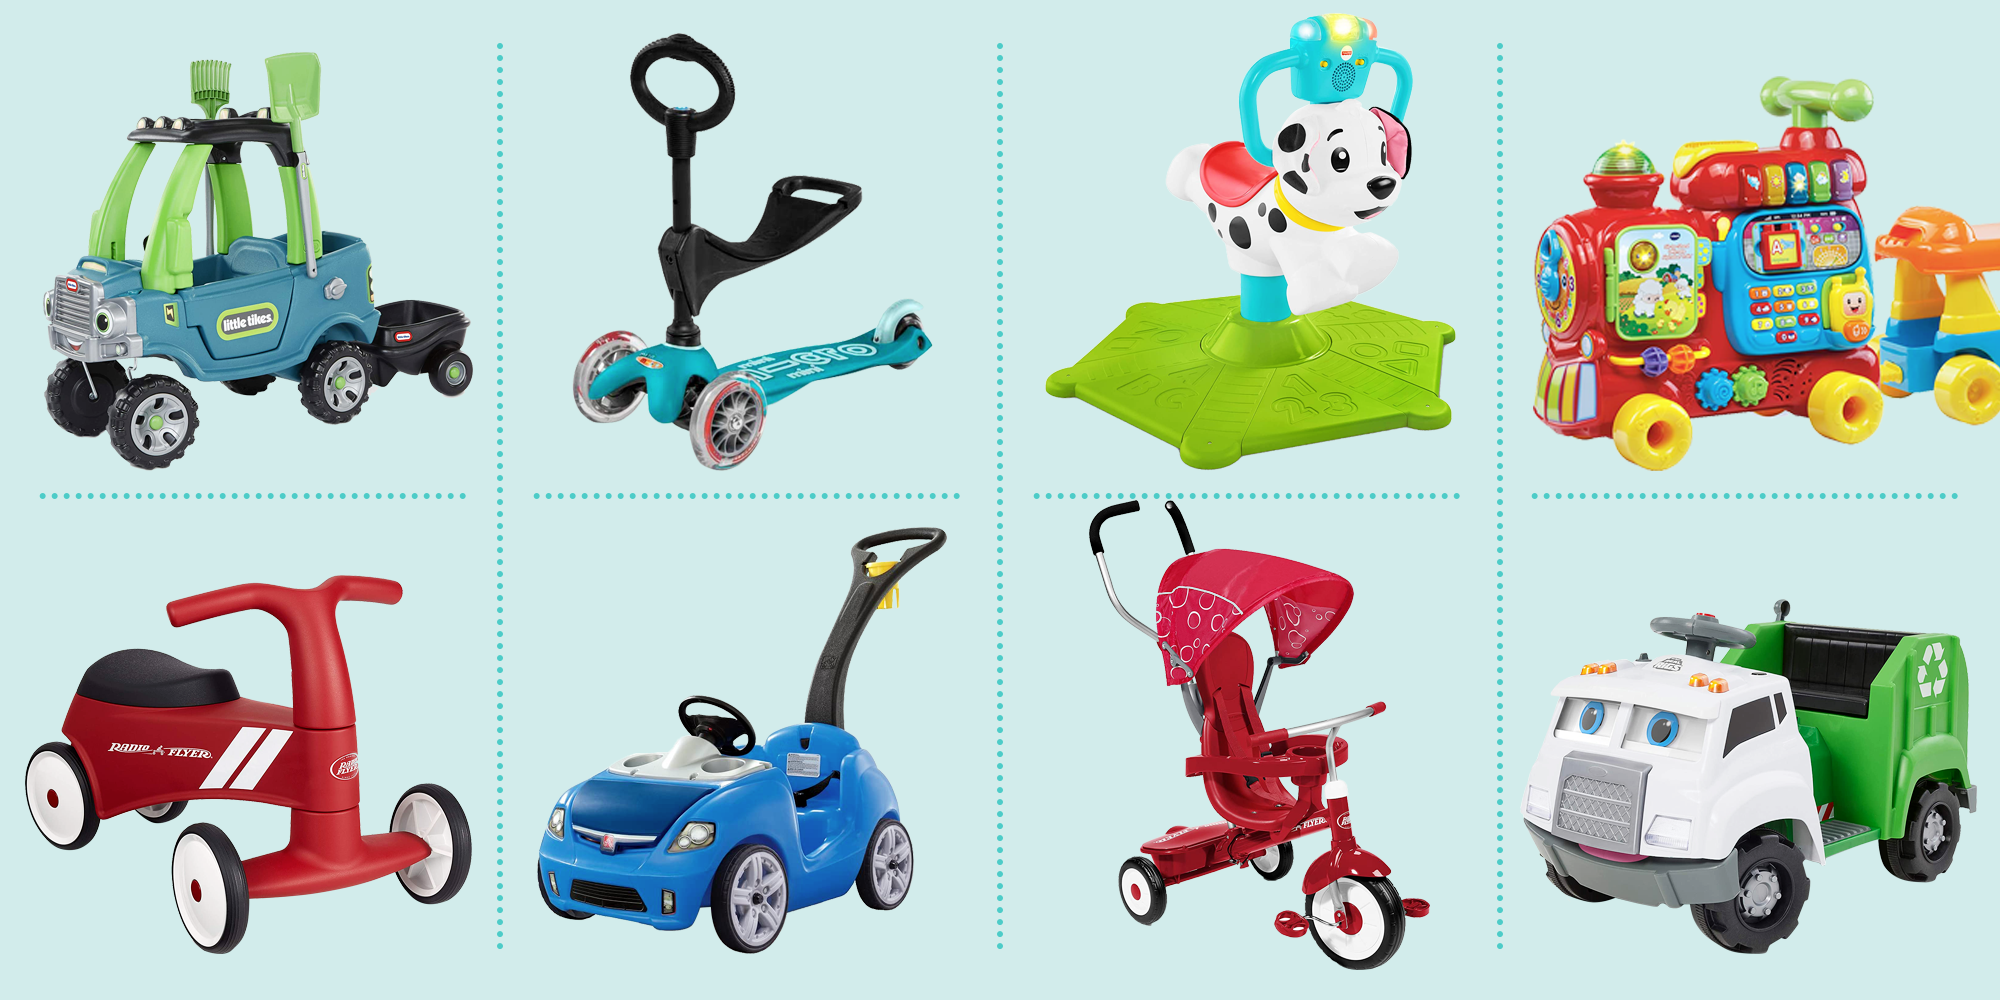 10 Best Ride On Toys Of 2021 Ride On Toys For Kids And Toddlers